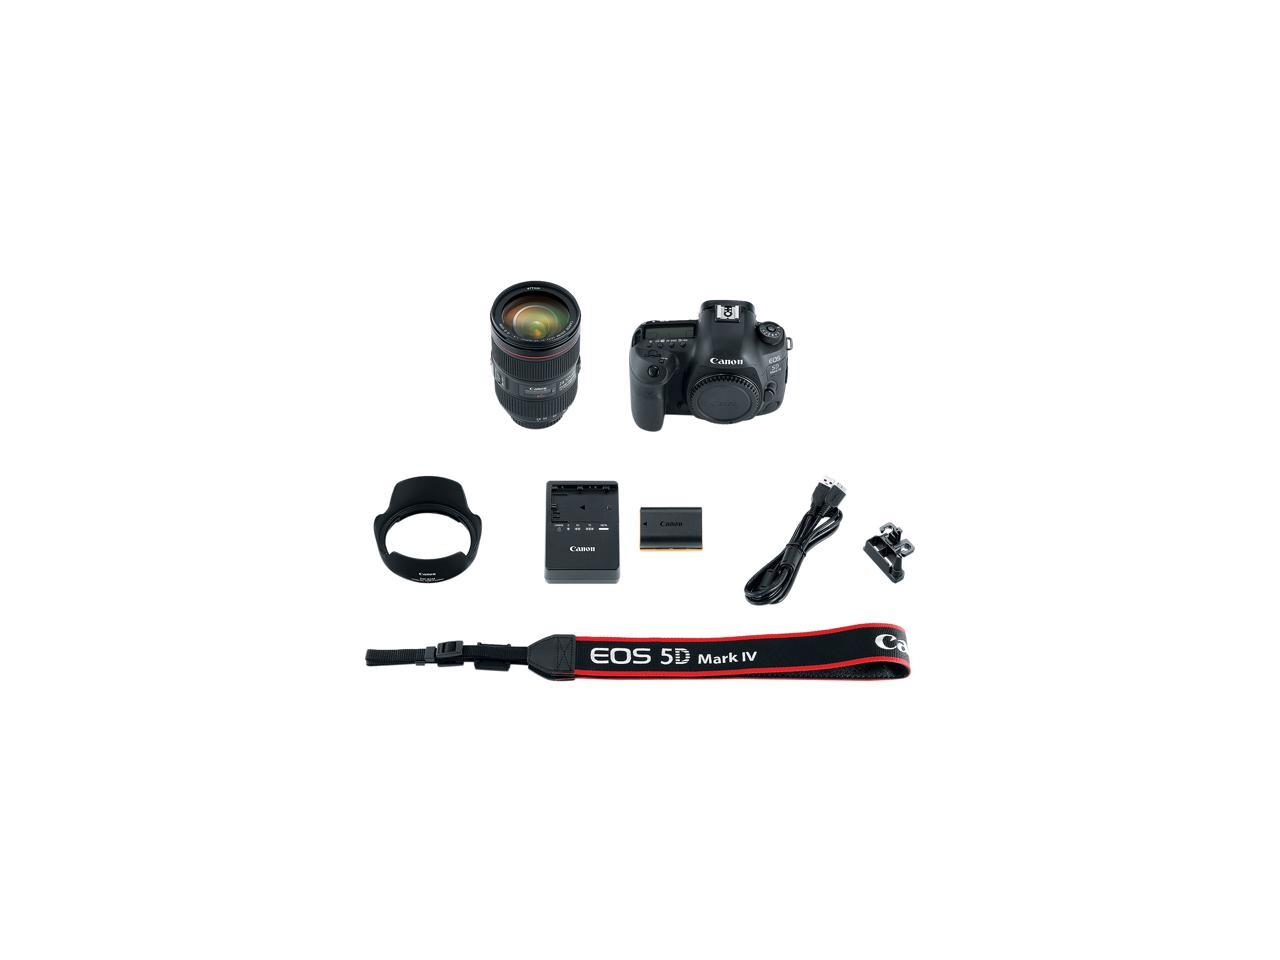 Canon 1483C010 EOS 5D Mark IV DSLR Camera with 24-105mm f